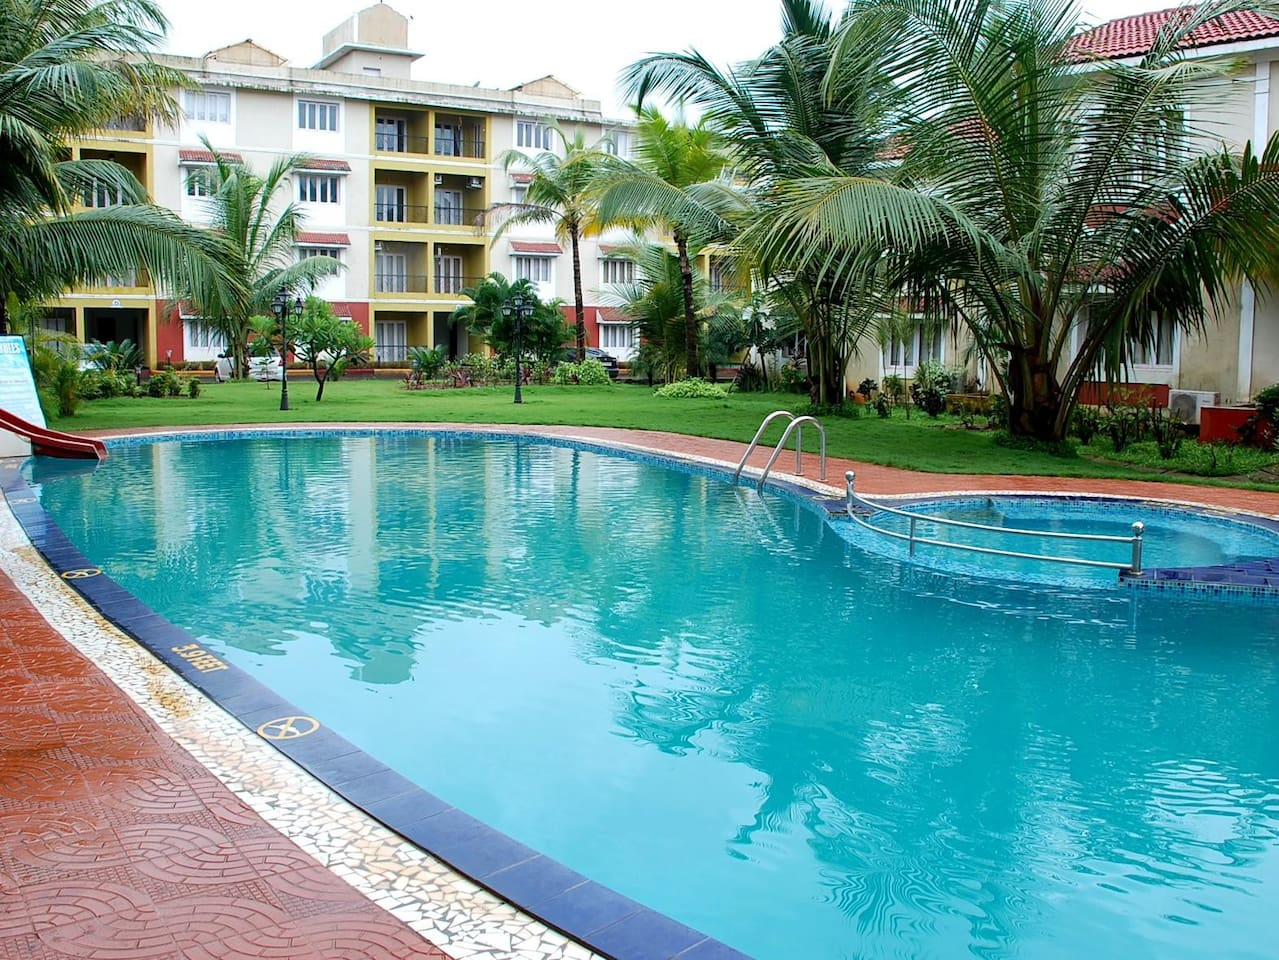 Lush Greenery, Well Planned Blocks and Inviting Swimming pool